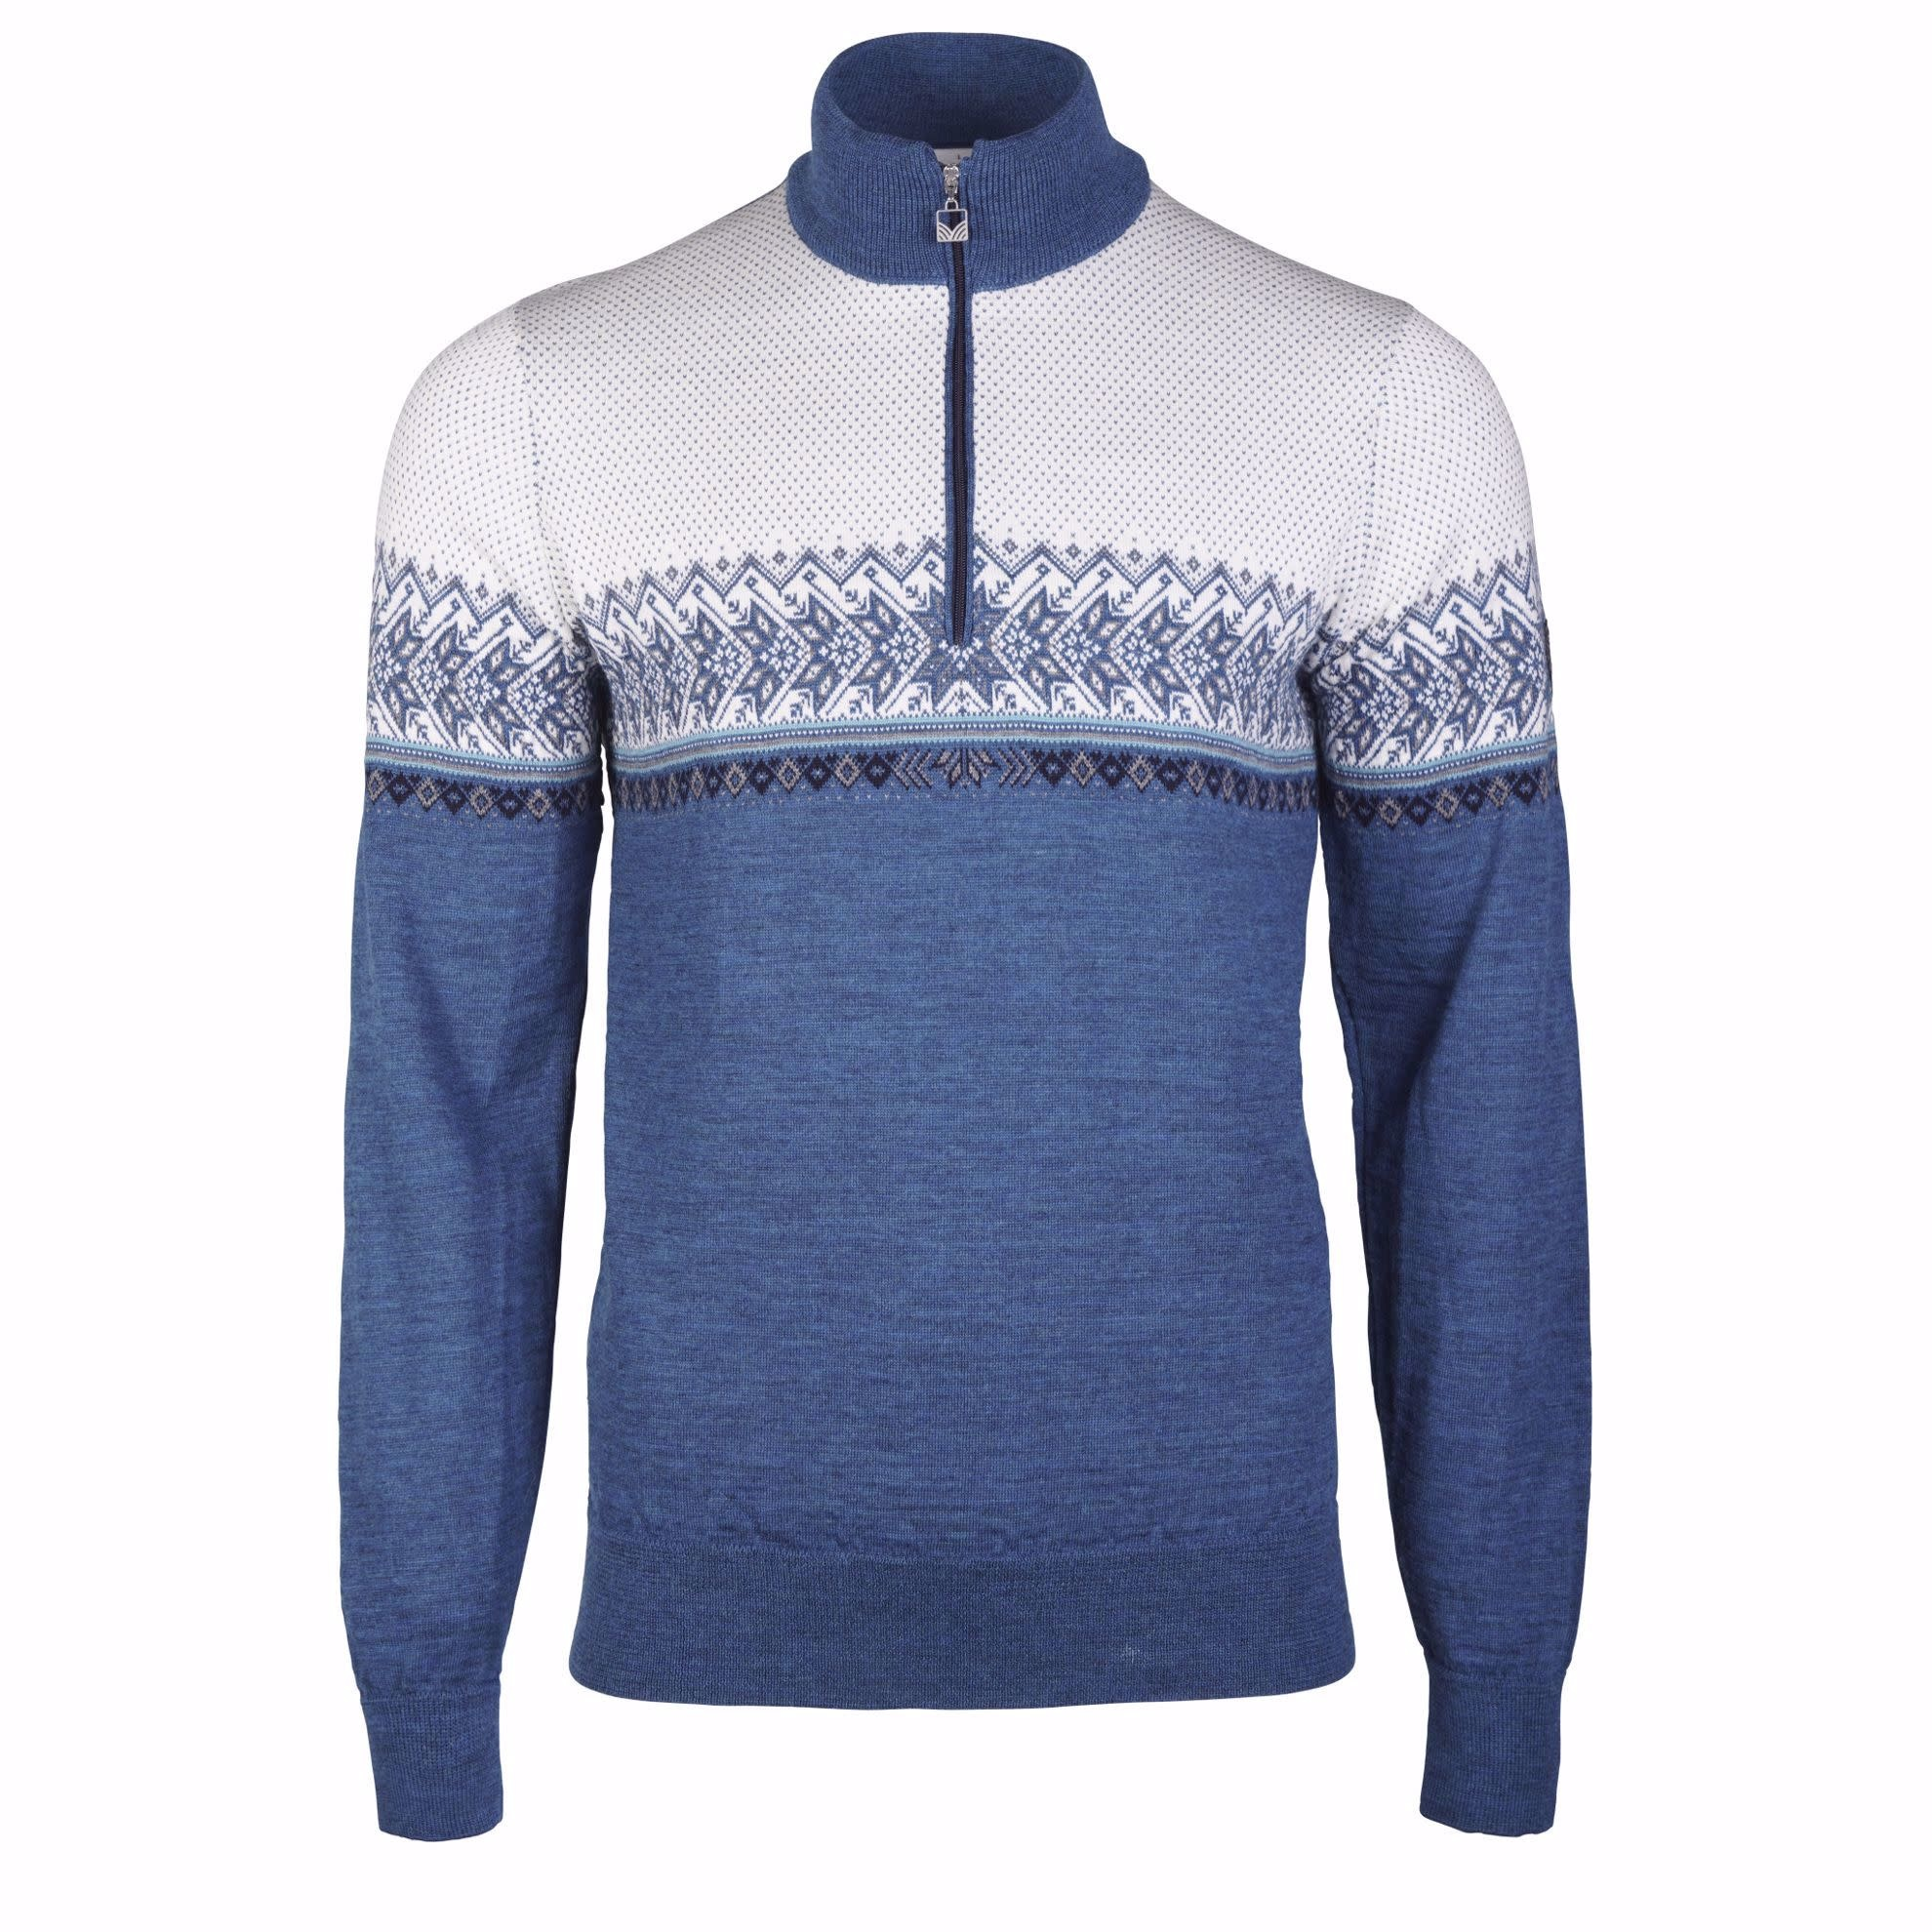 Dale of Norway Dale of Norway Hovden Men's Sweater